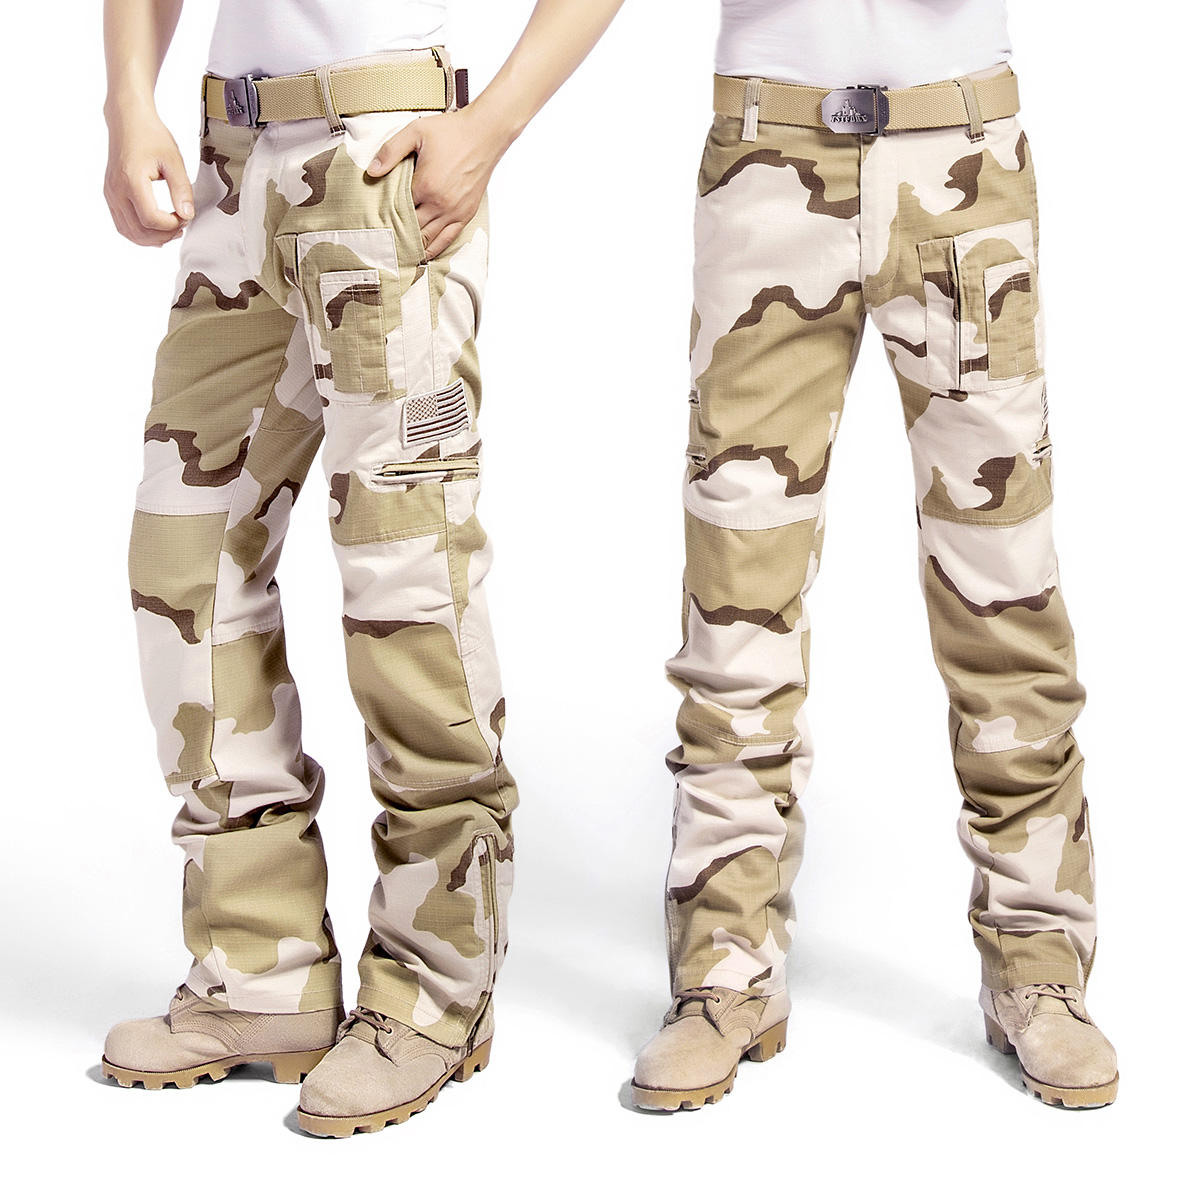 Outdoor casual overalls spring and autumn special forces camouflage wear resistant tactical pants mens straight tube consul desert Sansha